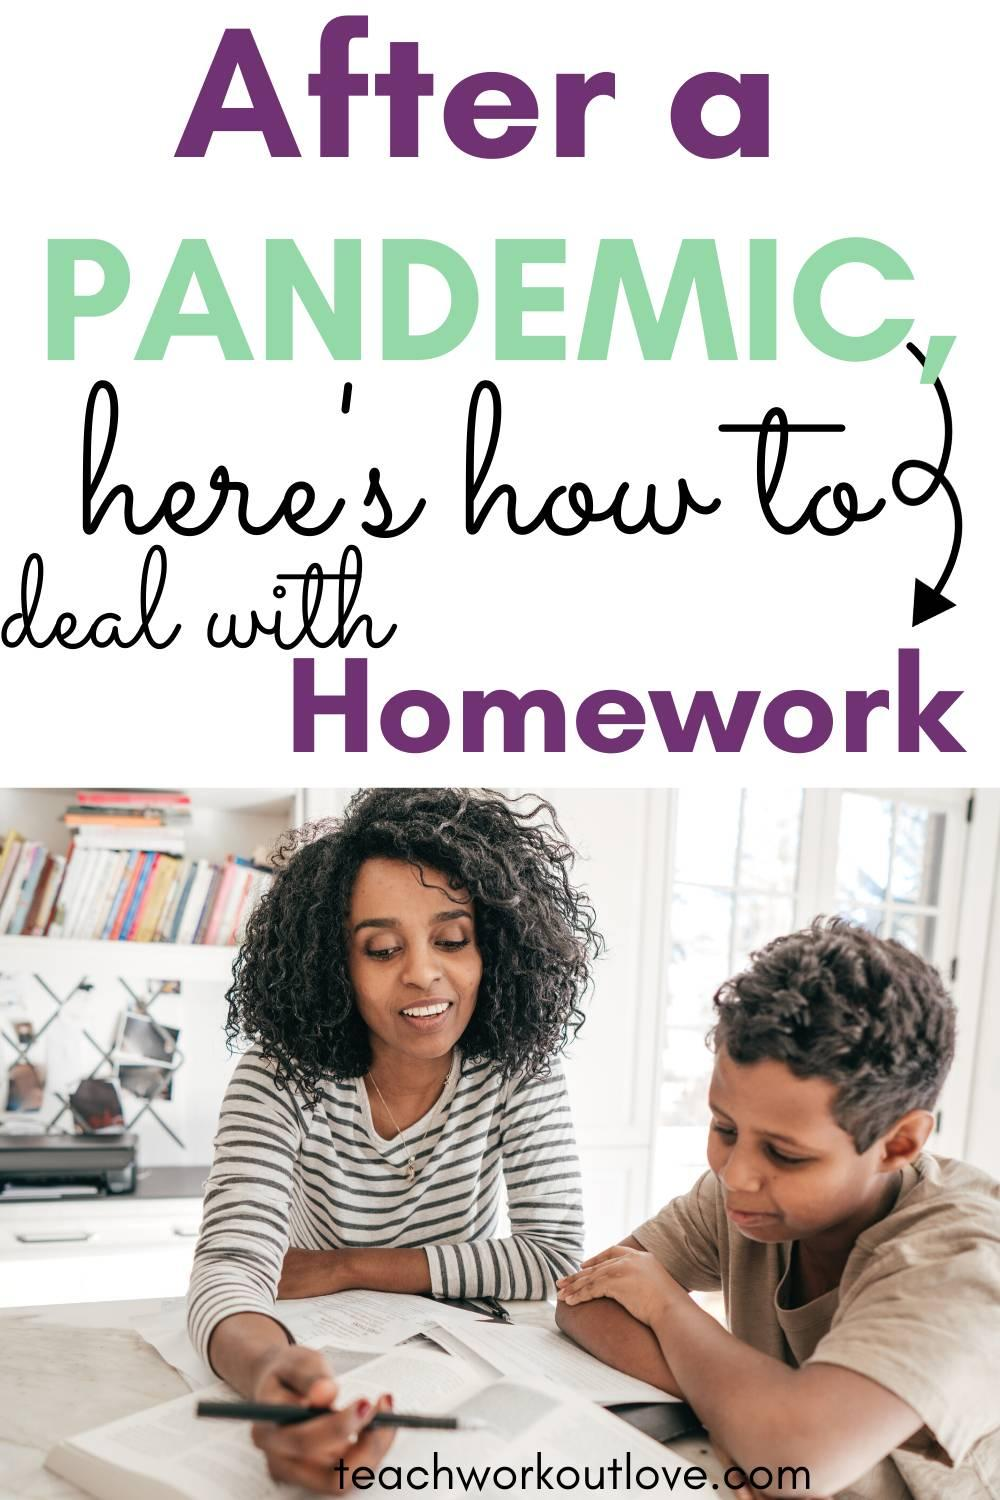 School is in session and homework has started. What's the best way for dealing with homework? We have the tips for you.